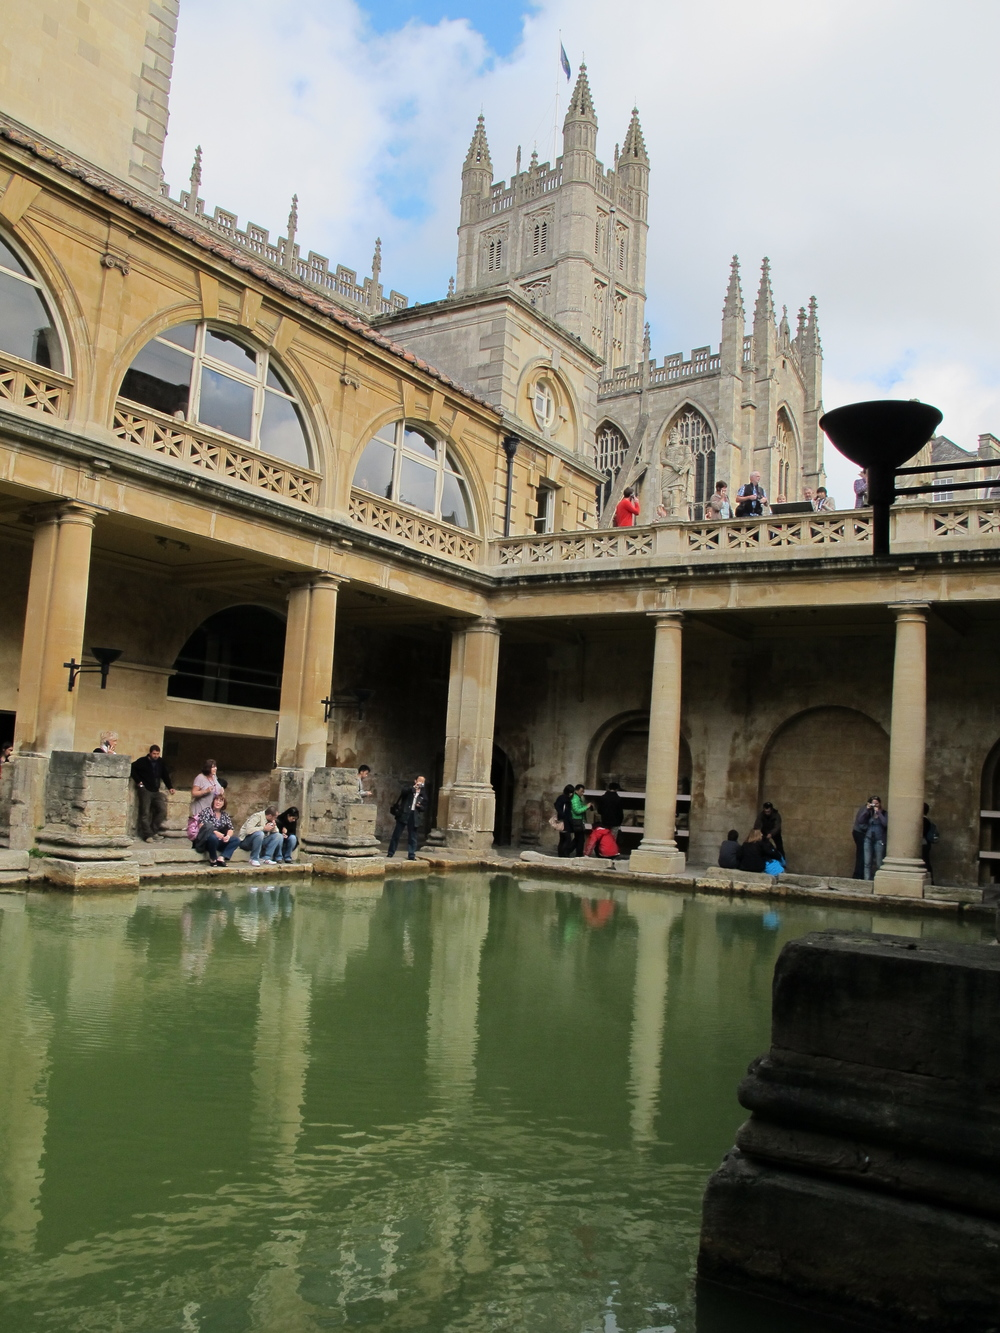 In the shadow of Bath's famous abbey, the geothermal waters still bubble up. These ancient Roman baths were once covered by a massive roof; now sunlight has allowed algae to grow, turning the waters a lovely, if uninviting, green.